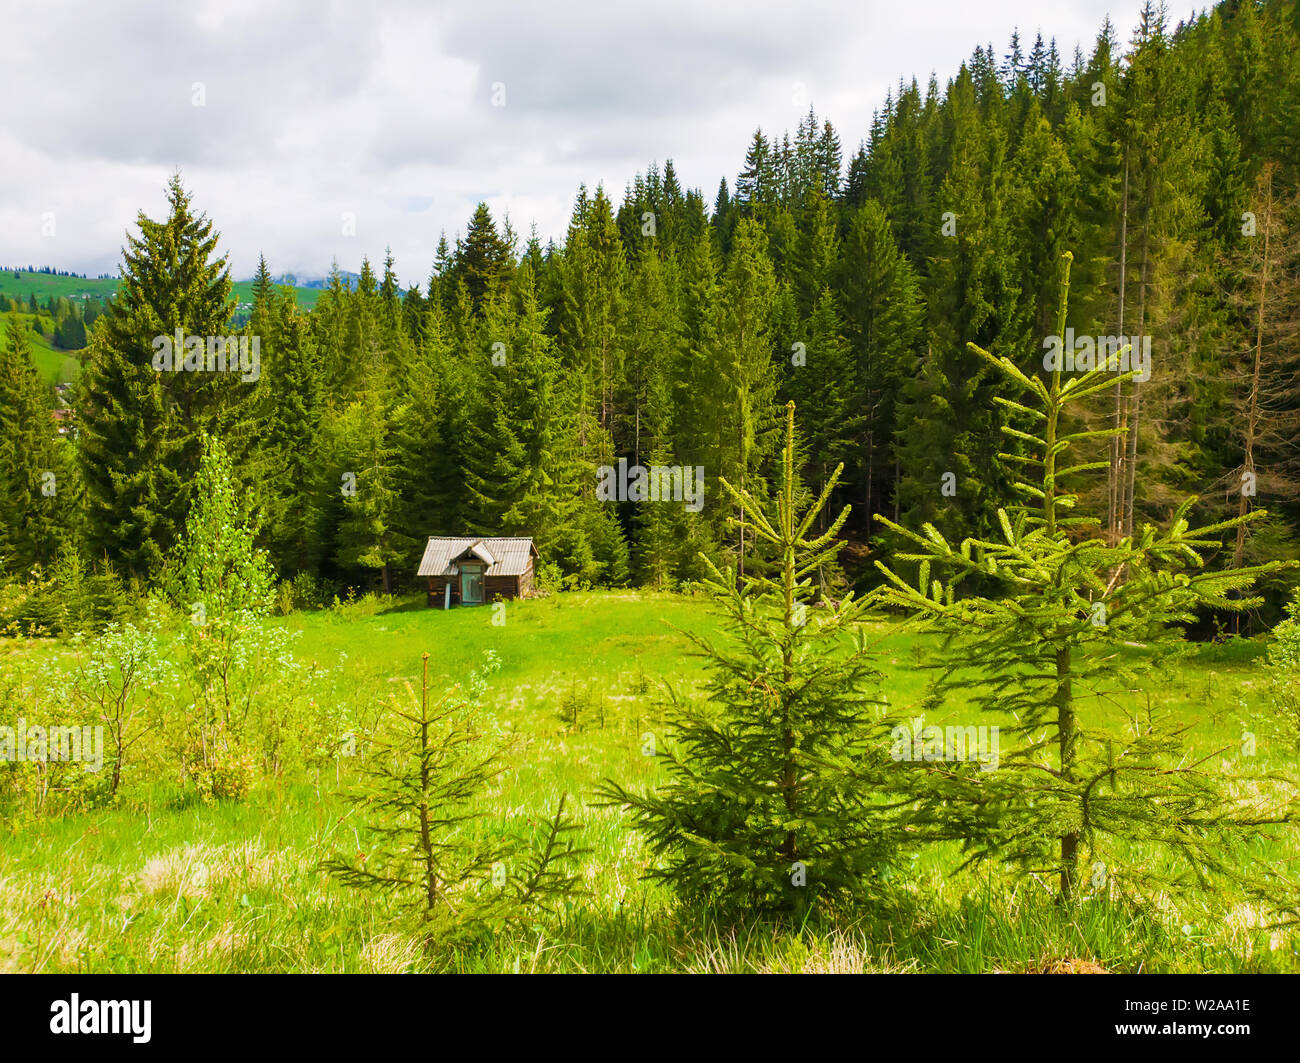 Llittle fir trees on the green grass field in front of a wooden cottage surrounded by coniferous forests. Picturesque spring idyllic scene of the Carp - Stock Image